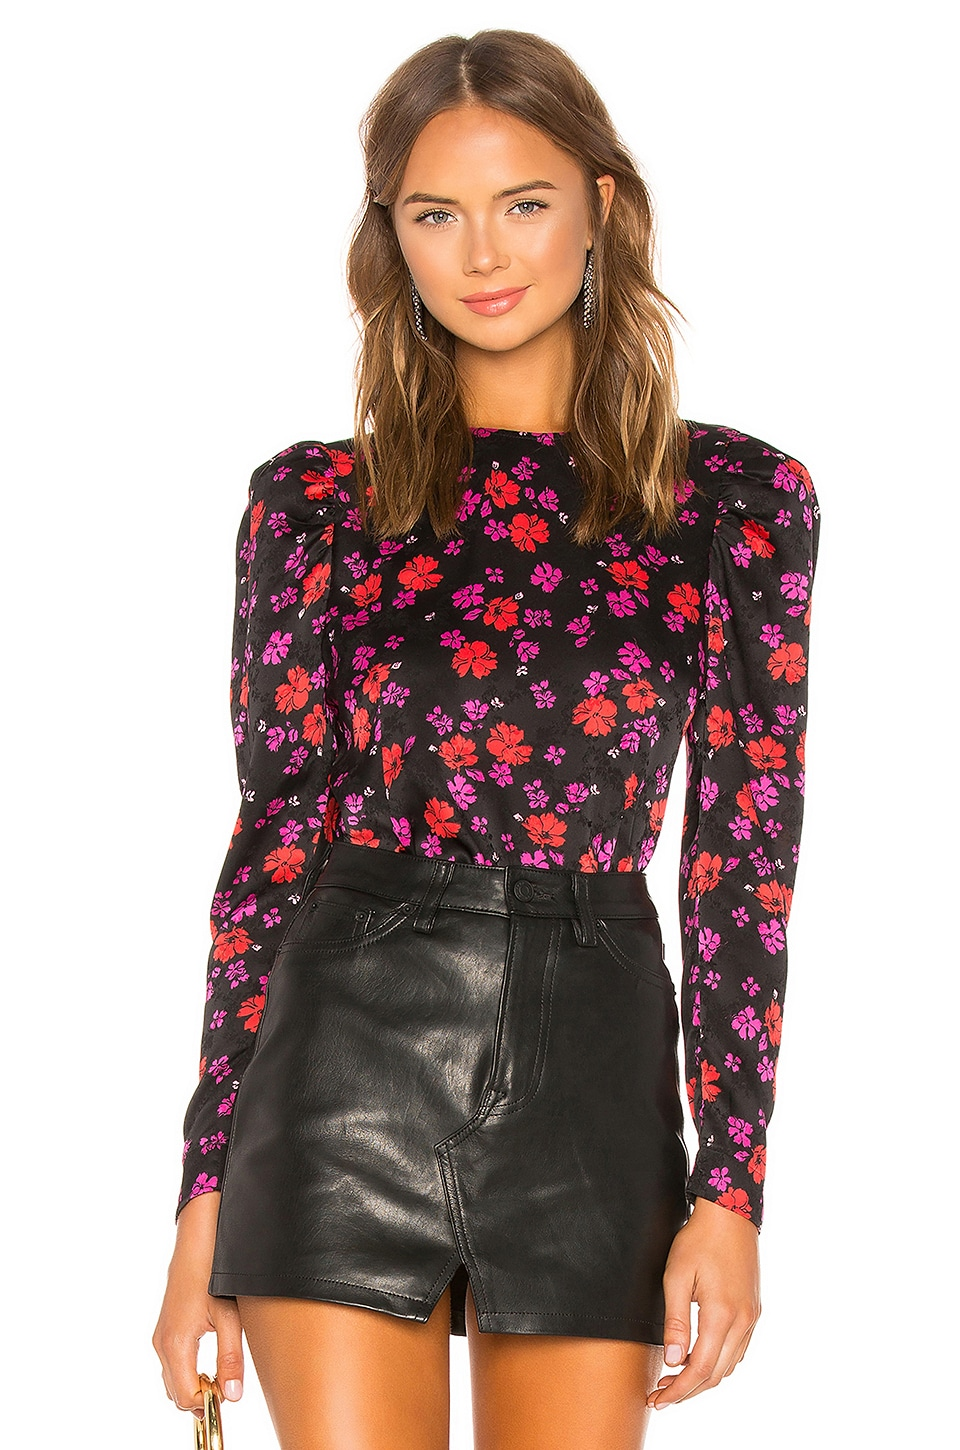 L'Academie The Eleonora Blouse in Black & Red Floral